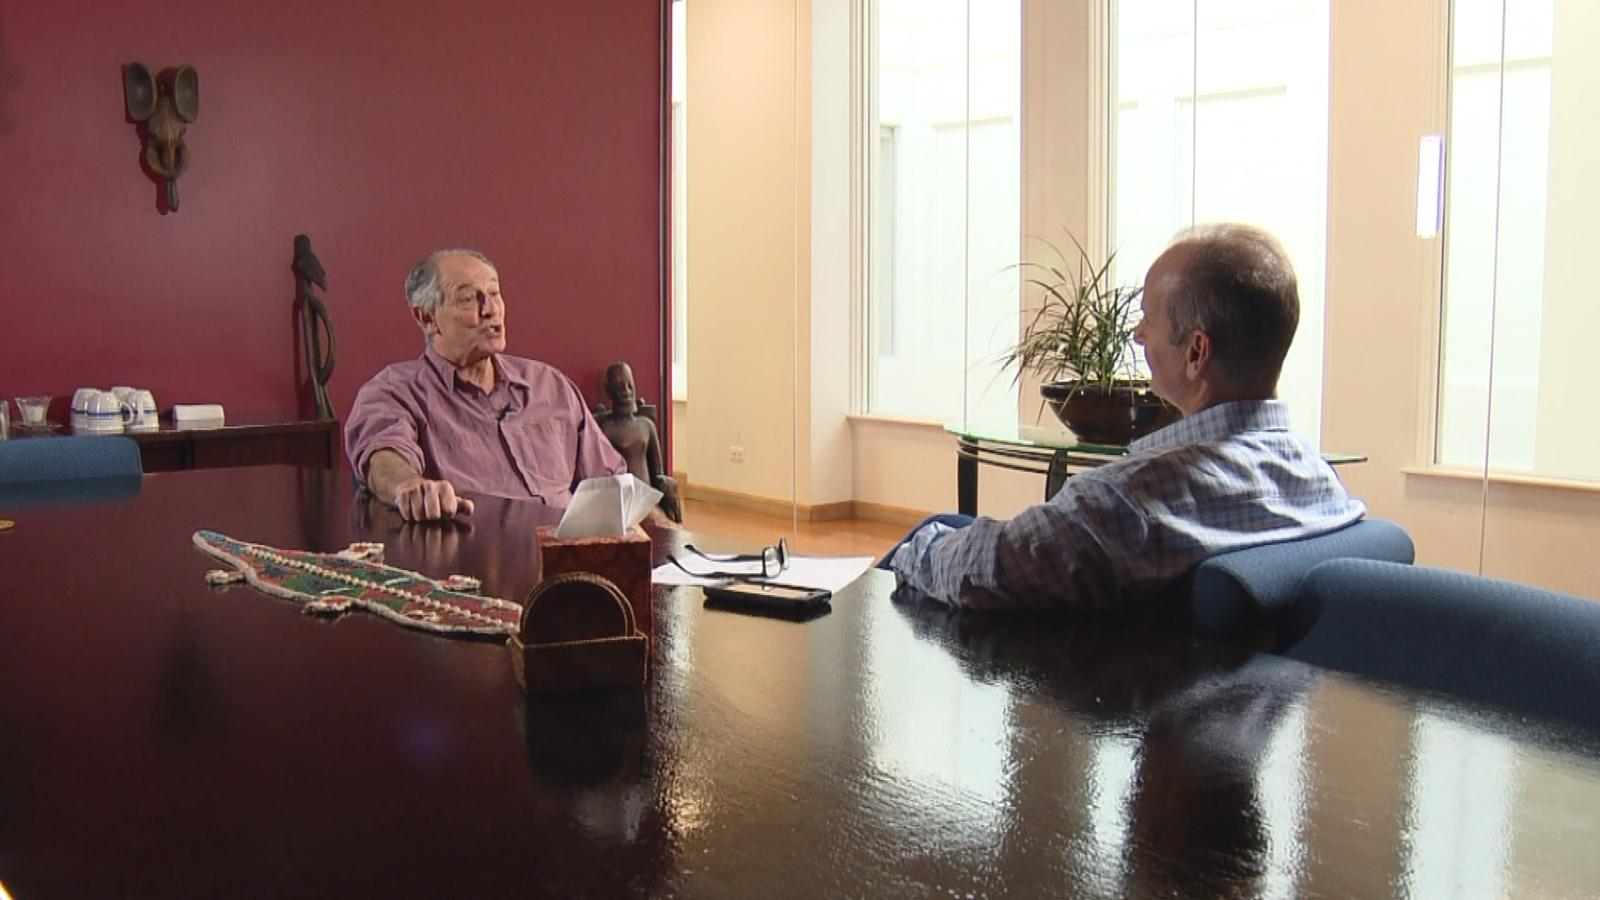 CBS4's Brian Maass interviews David Lane. (credit: CBS)